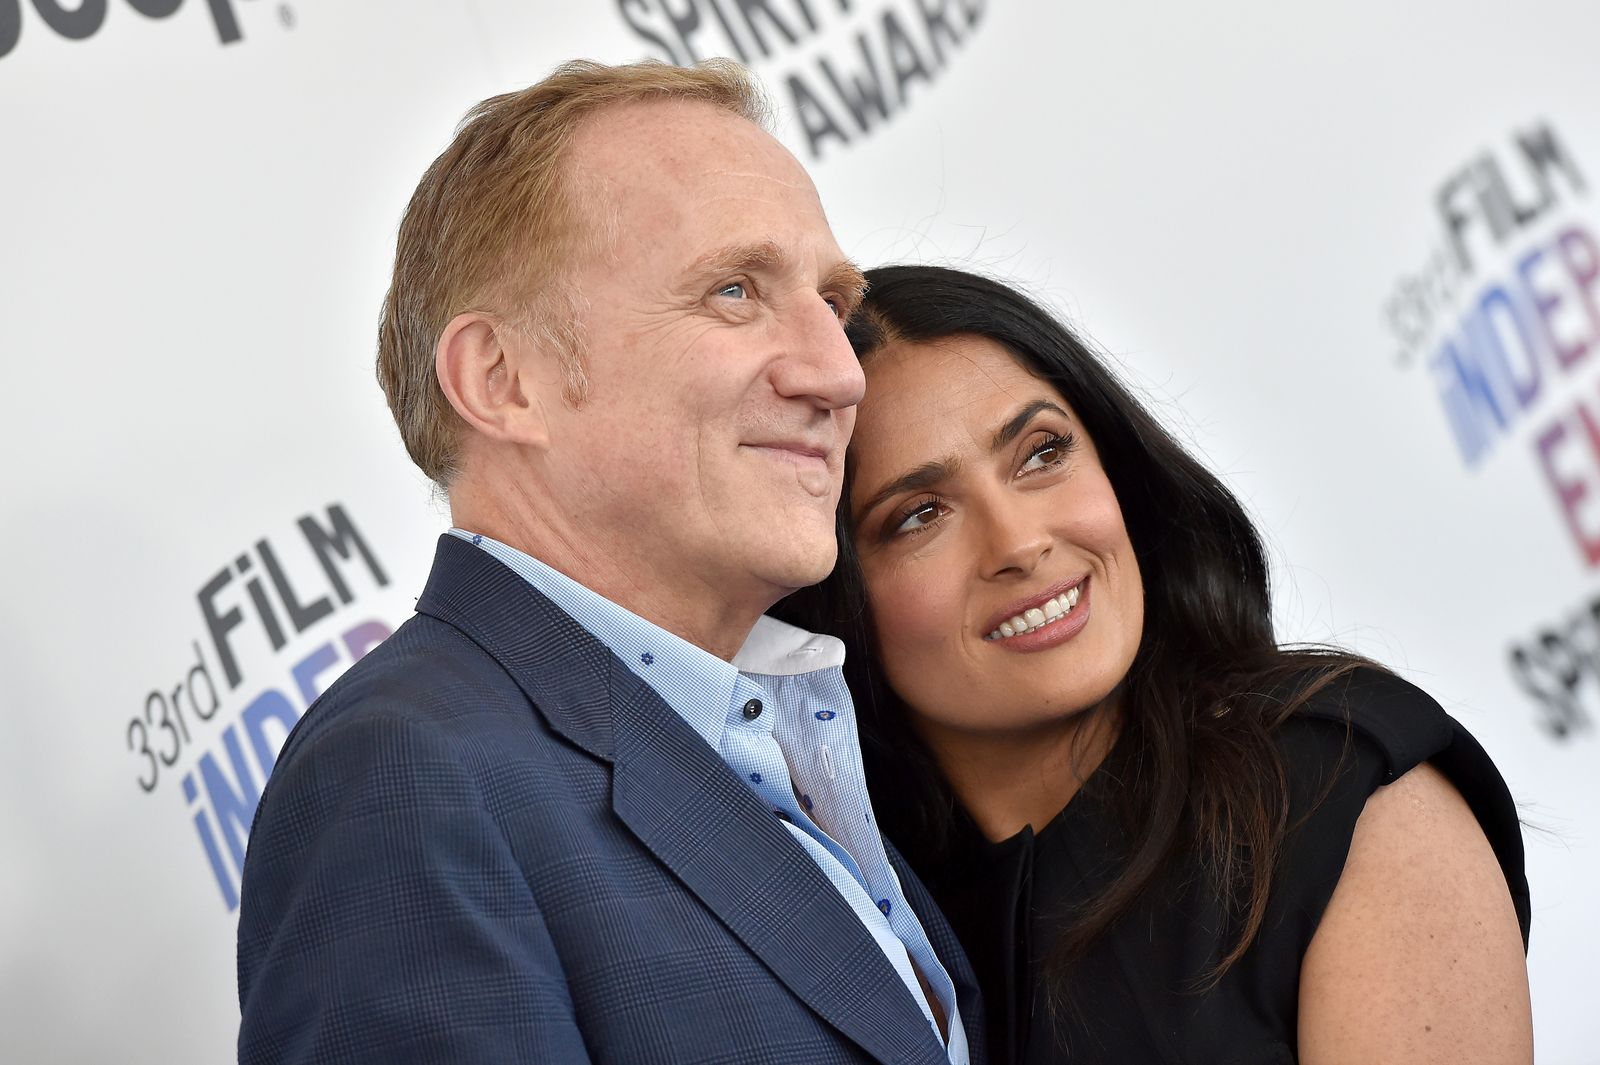 Francois-Henri Pinault and actress Salma Hayek at the Film Independent Spirit Awards on March 3, 2018, in Santa Monica, California | Photo: Axelle/Bauer-Griffin/FilmMagic/Getty Images